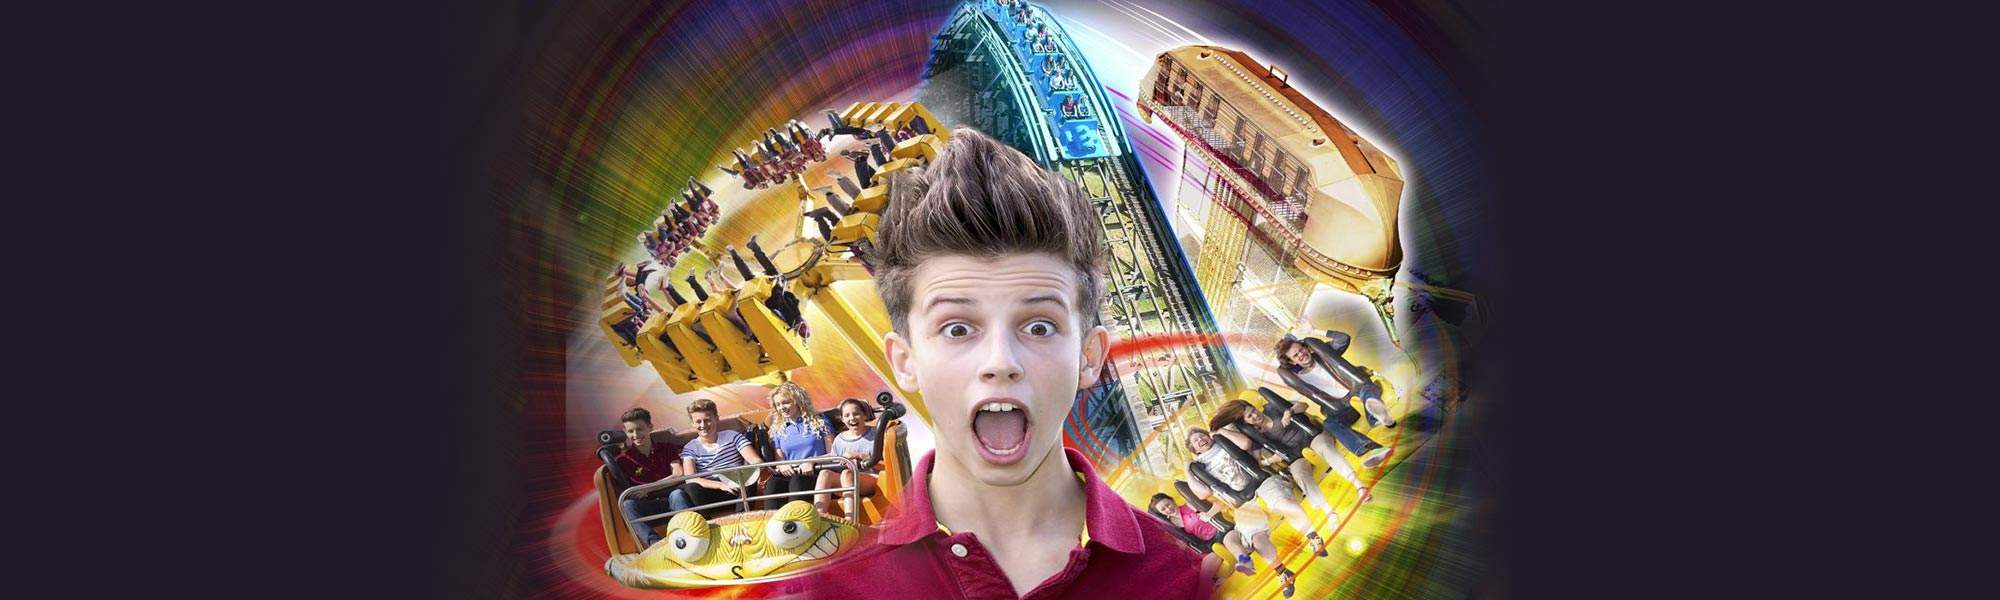 Events for Children Lightwater Valley Ticket Bundles - One of the UK's Most Exciting Theme Parks! Up to 40% off